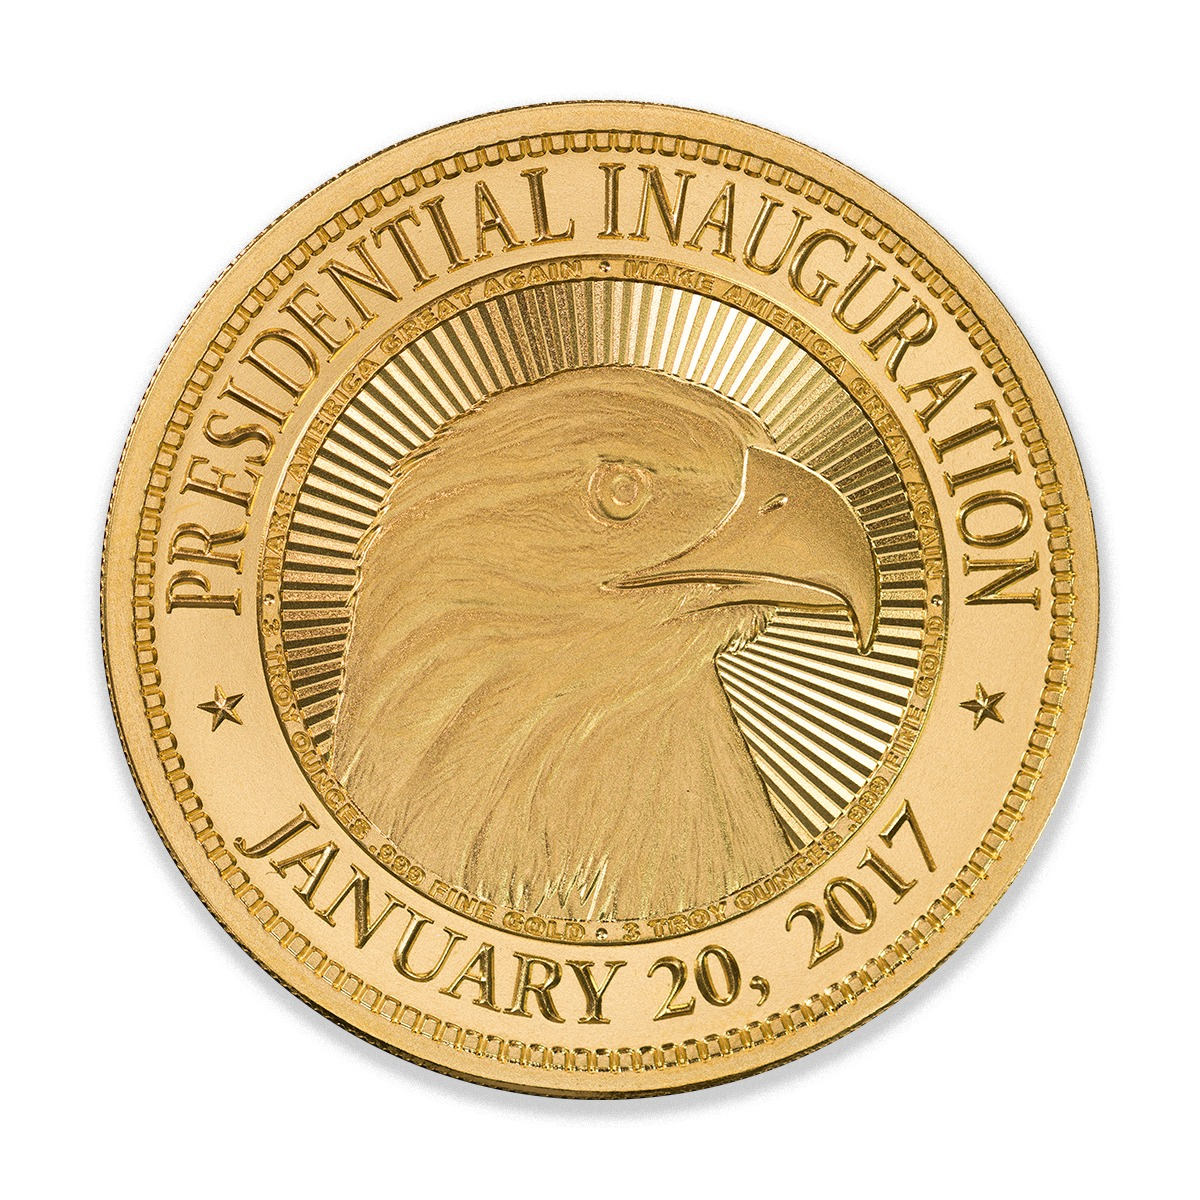 Trump Series - Inauguration - 3 ozt. 50mm .999 Fine Gold Art Medal with Airtite (Limited Mintage of 45)